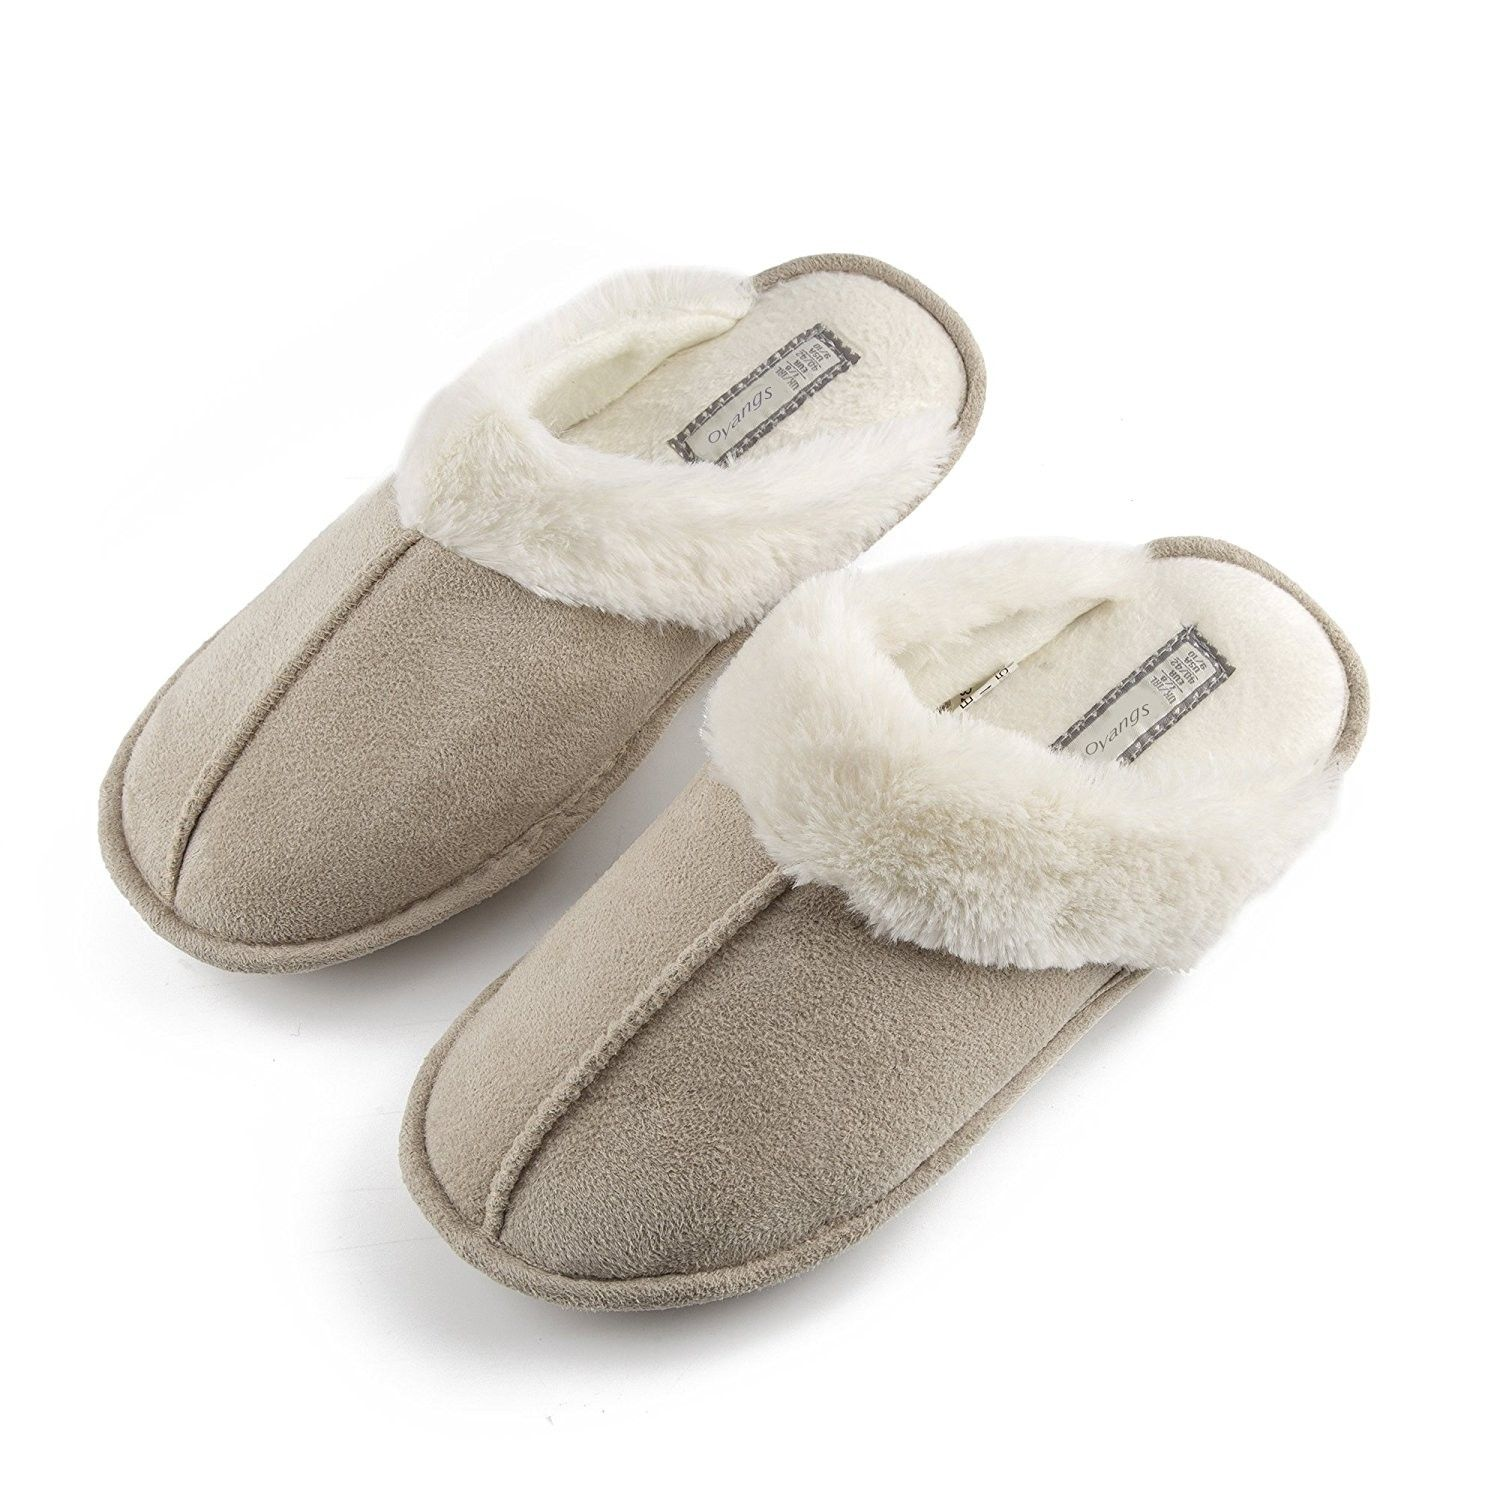 a9c895c85425ac Slippers Womens Bedroom Slipper - A - CF1882CXQI2